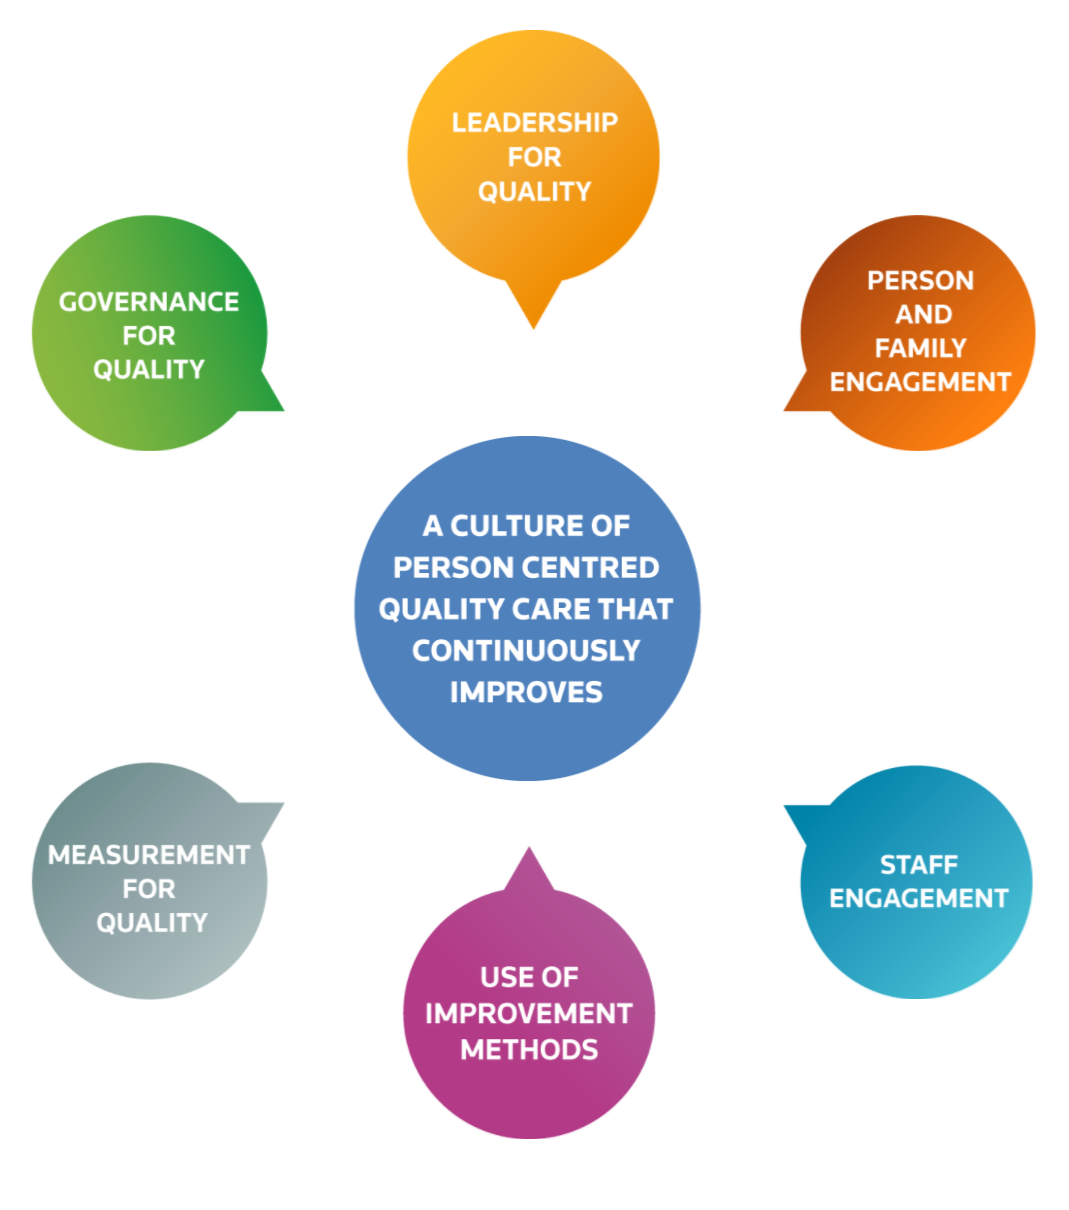 culture of person centred quality care